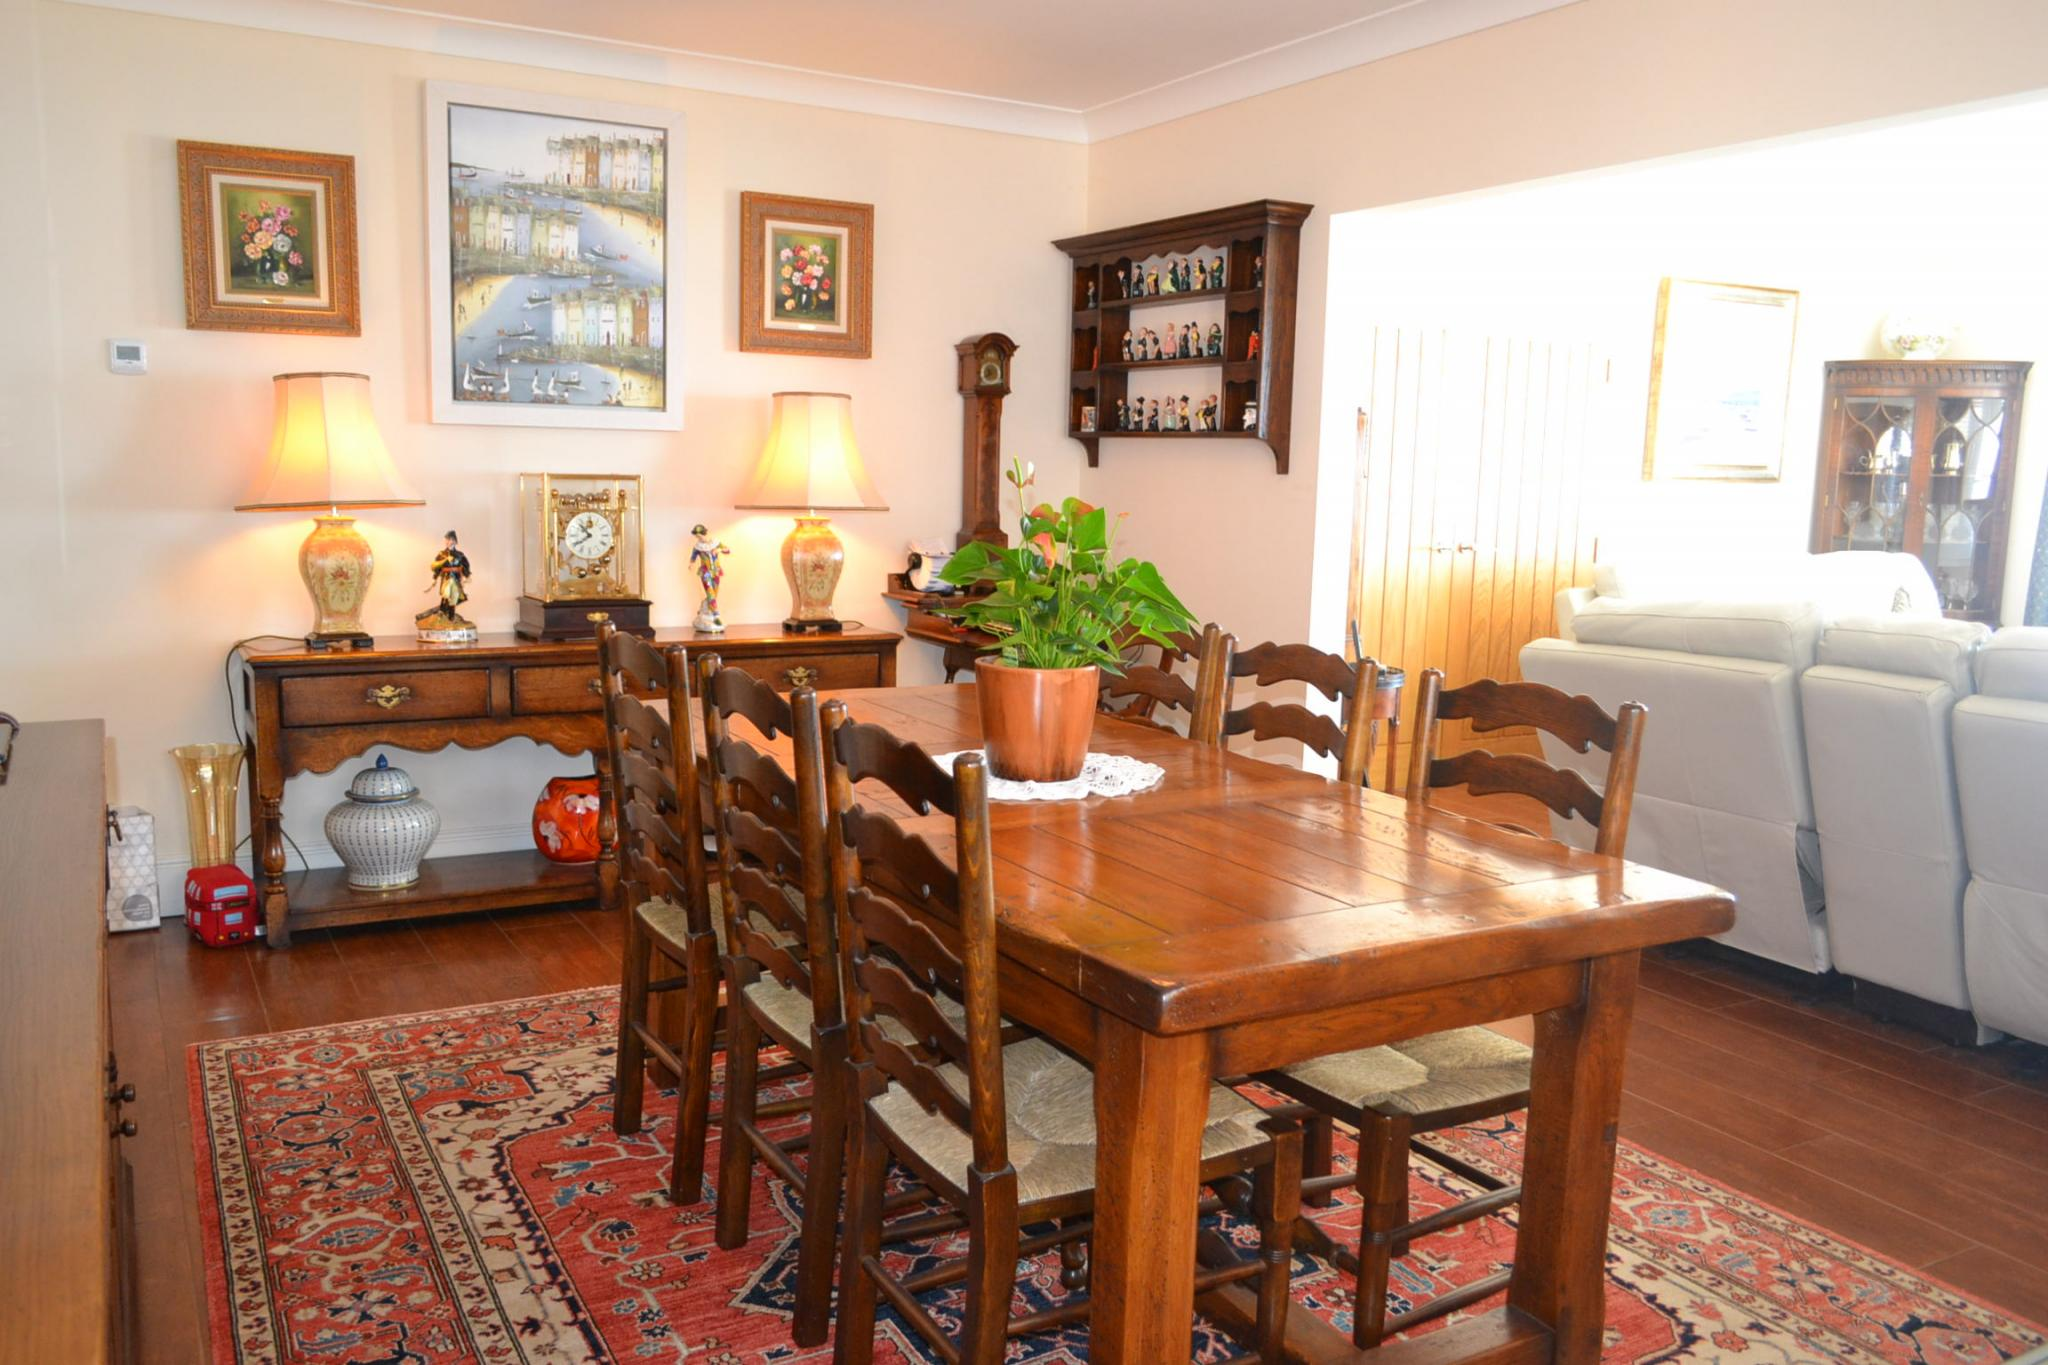 5 bedroom detached house For Sale in Port St Mary - Photograph 11